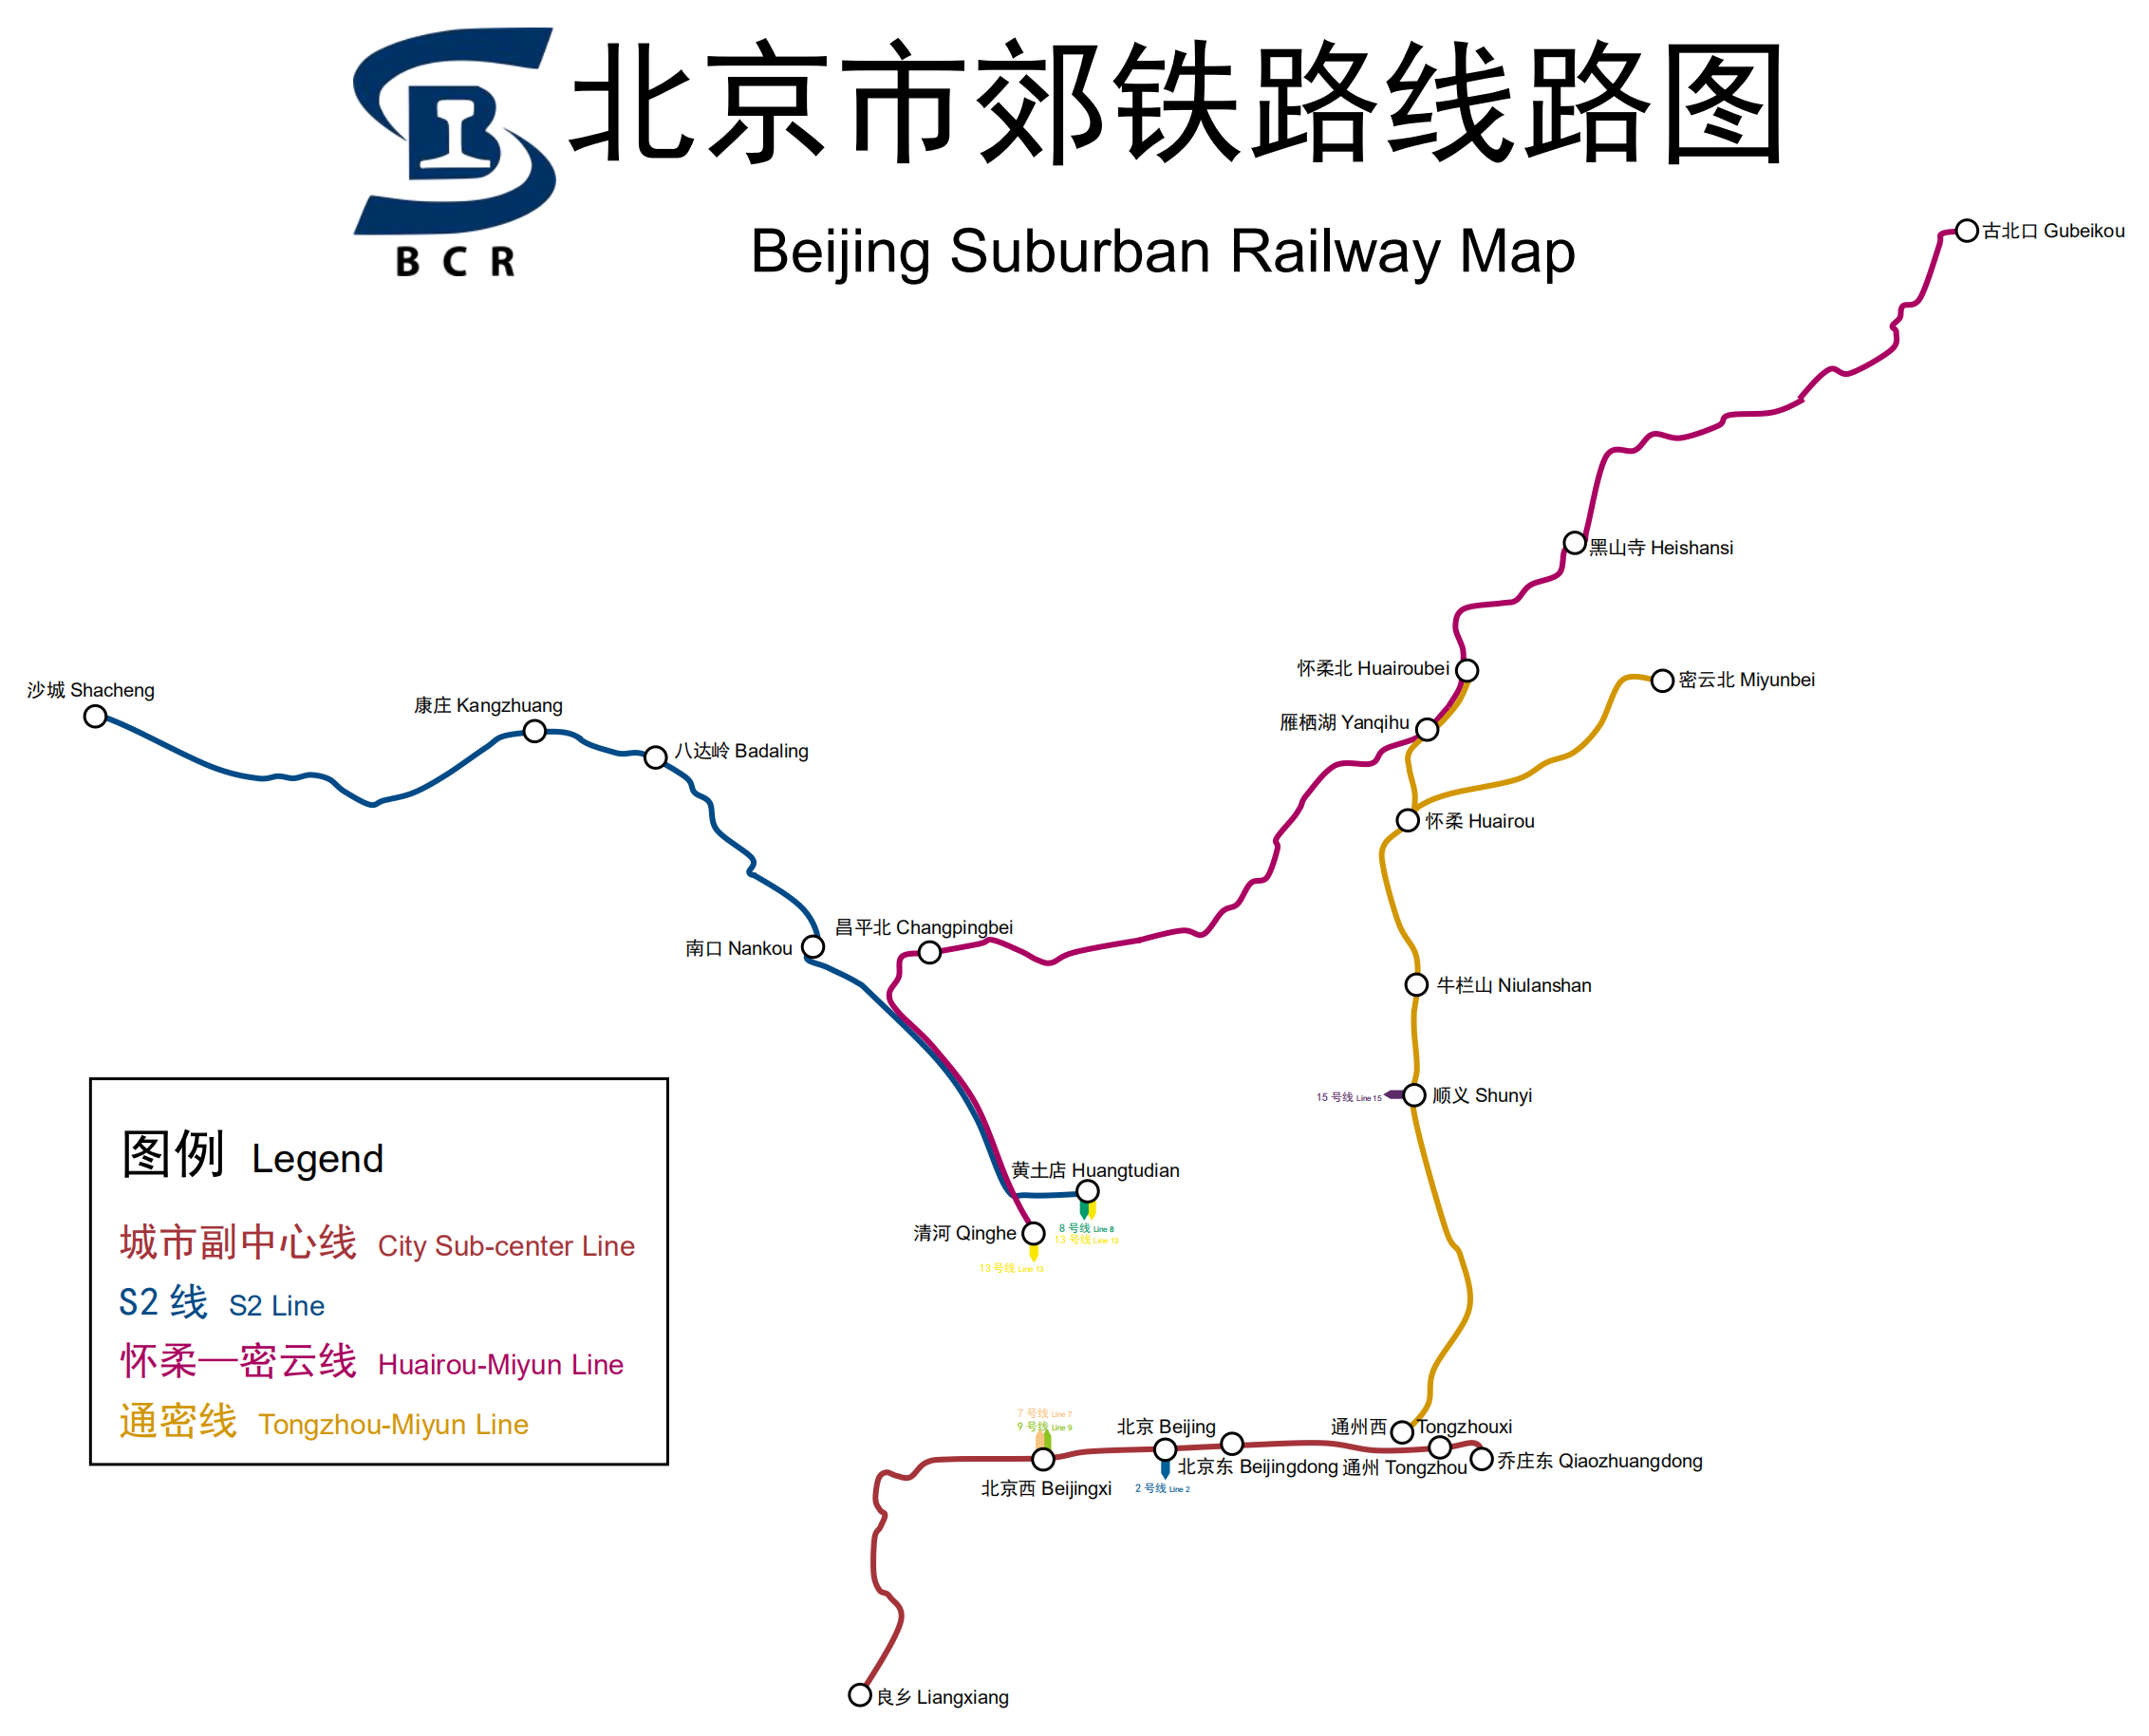 Beijing Subway Map 2017 Legend.Beijing Suburban Railway Wikipedia